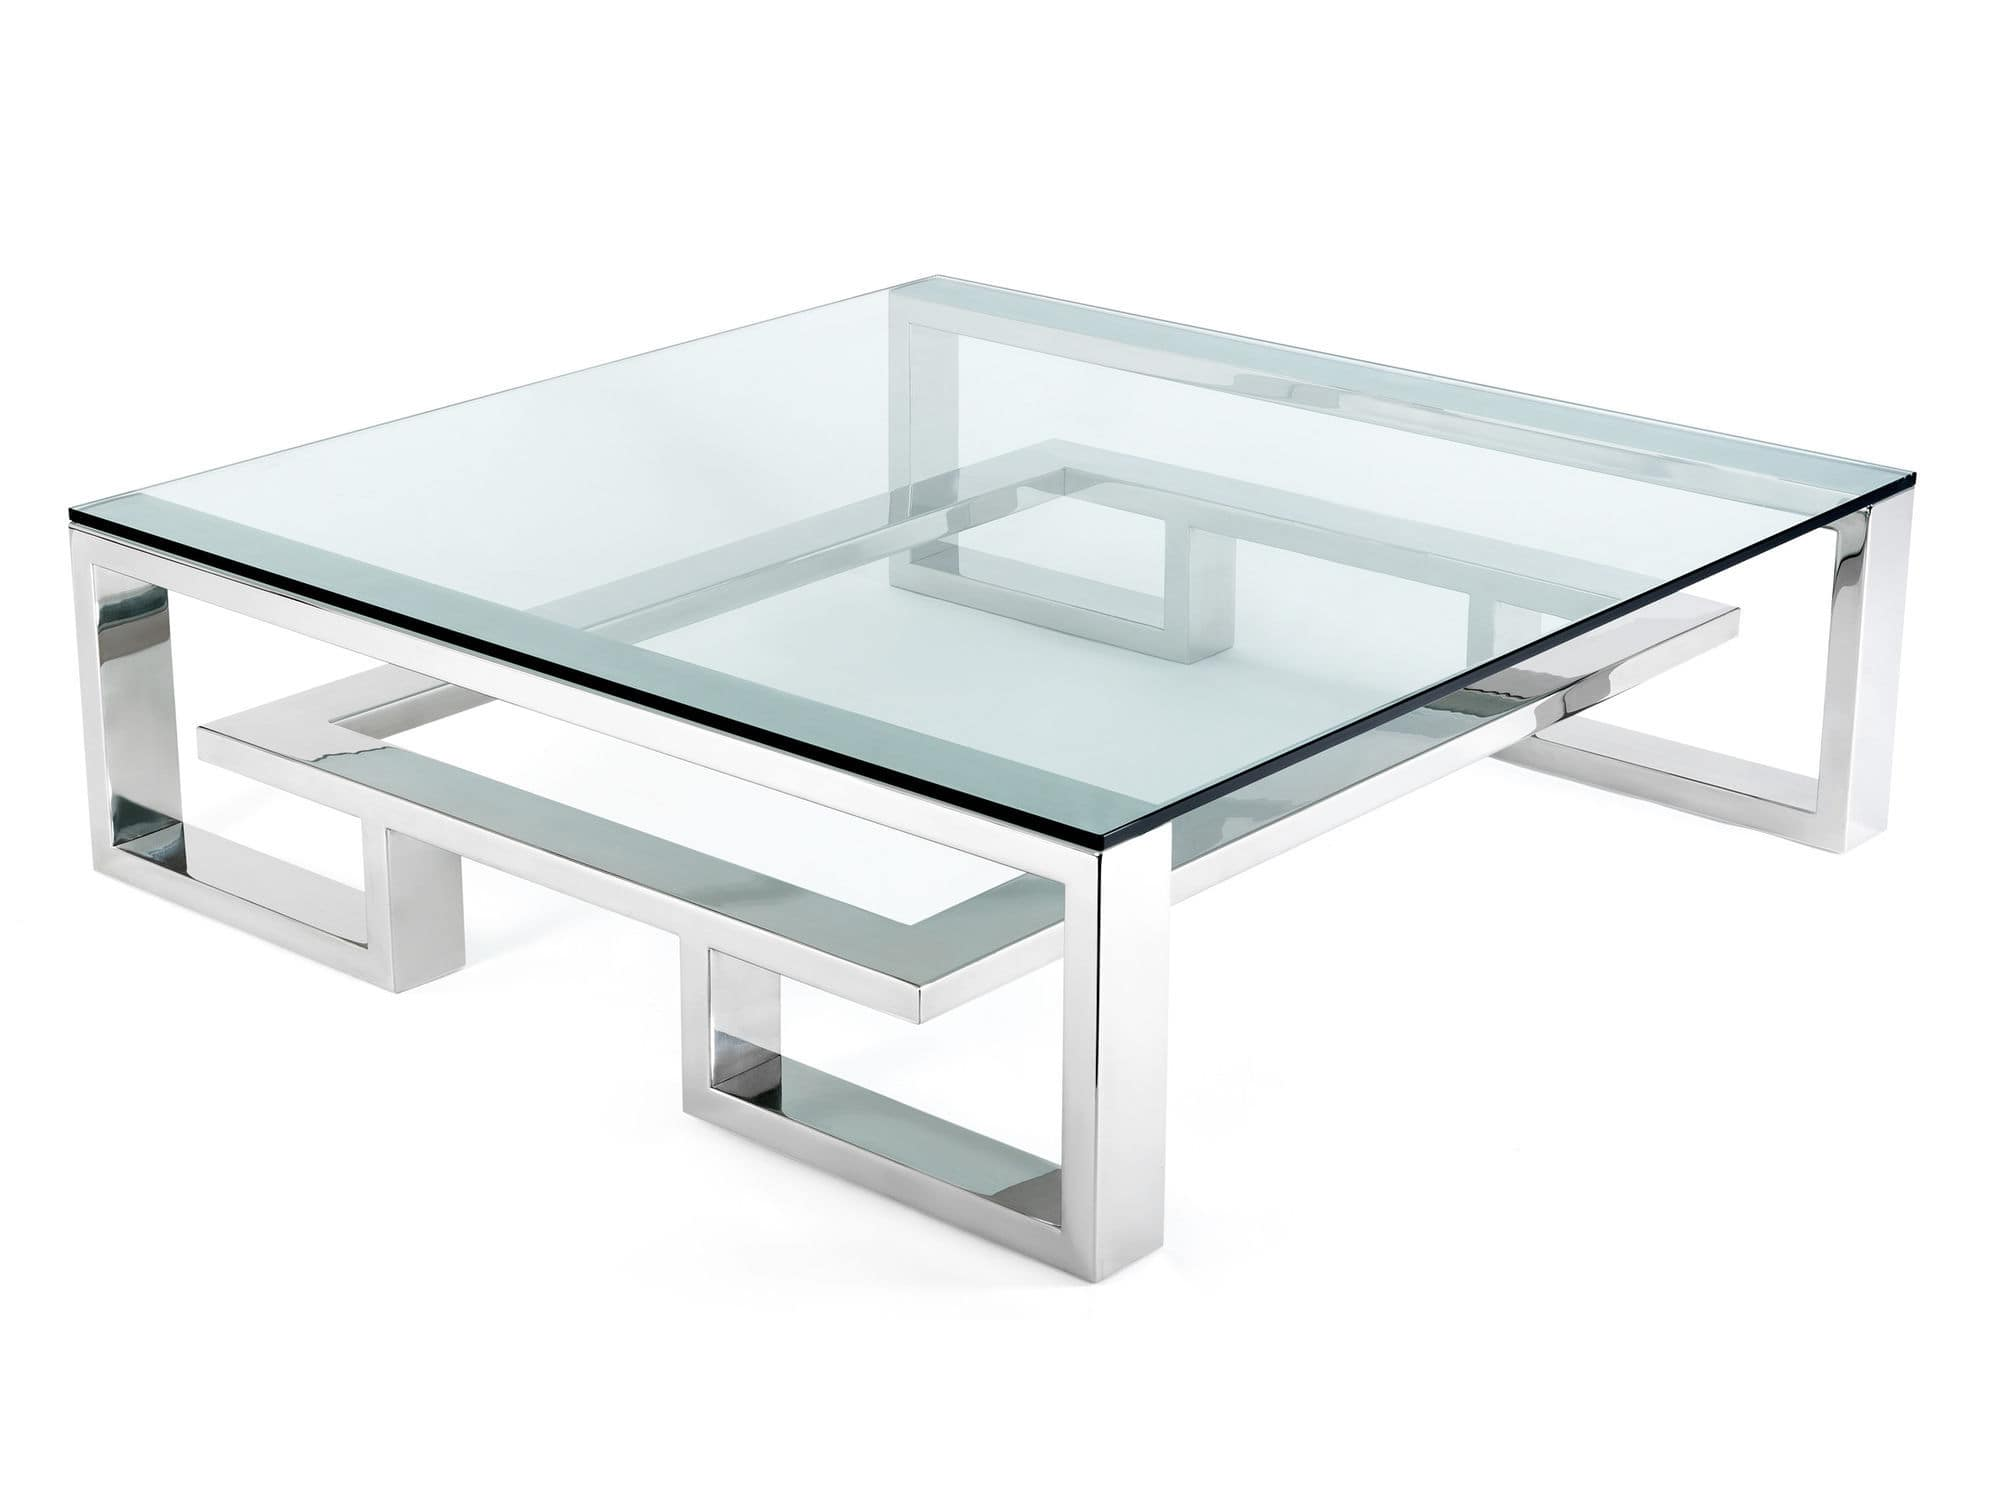 Table basse verre carr e 7 id es de d coration for Table basse verre carree